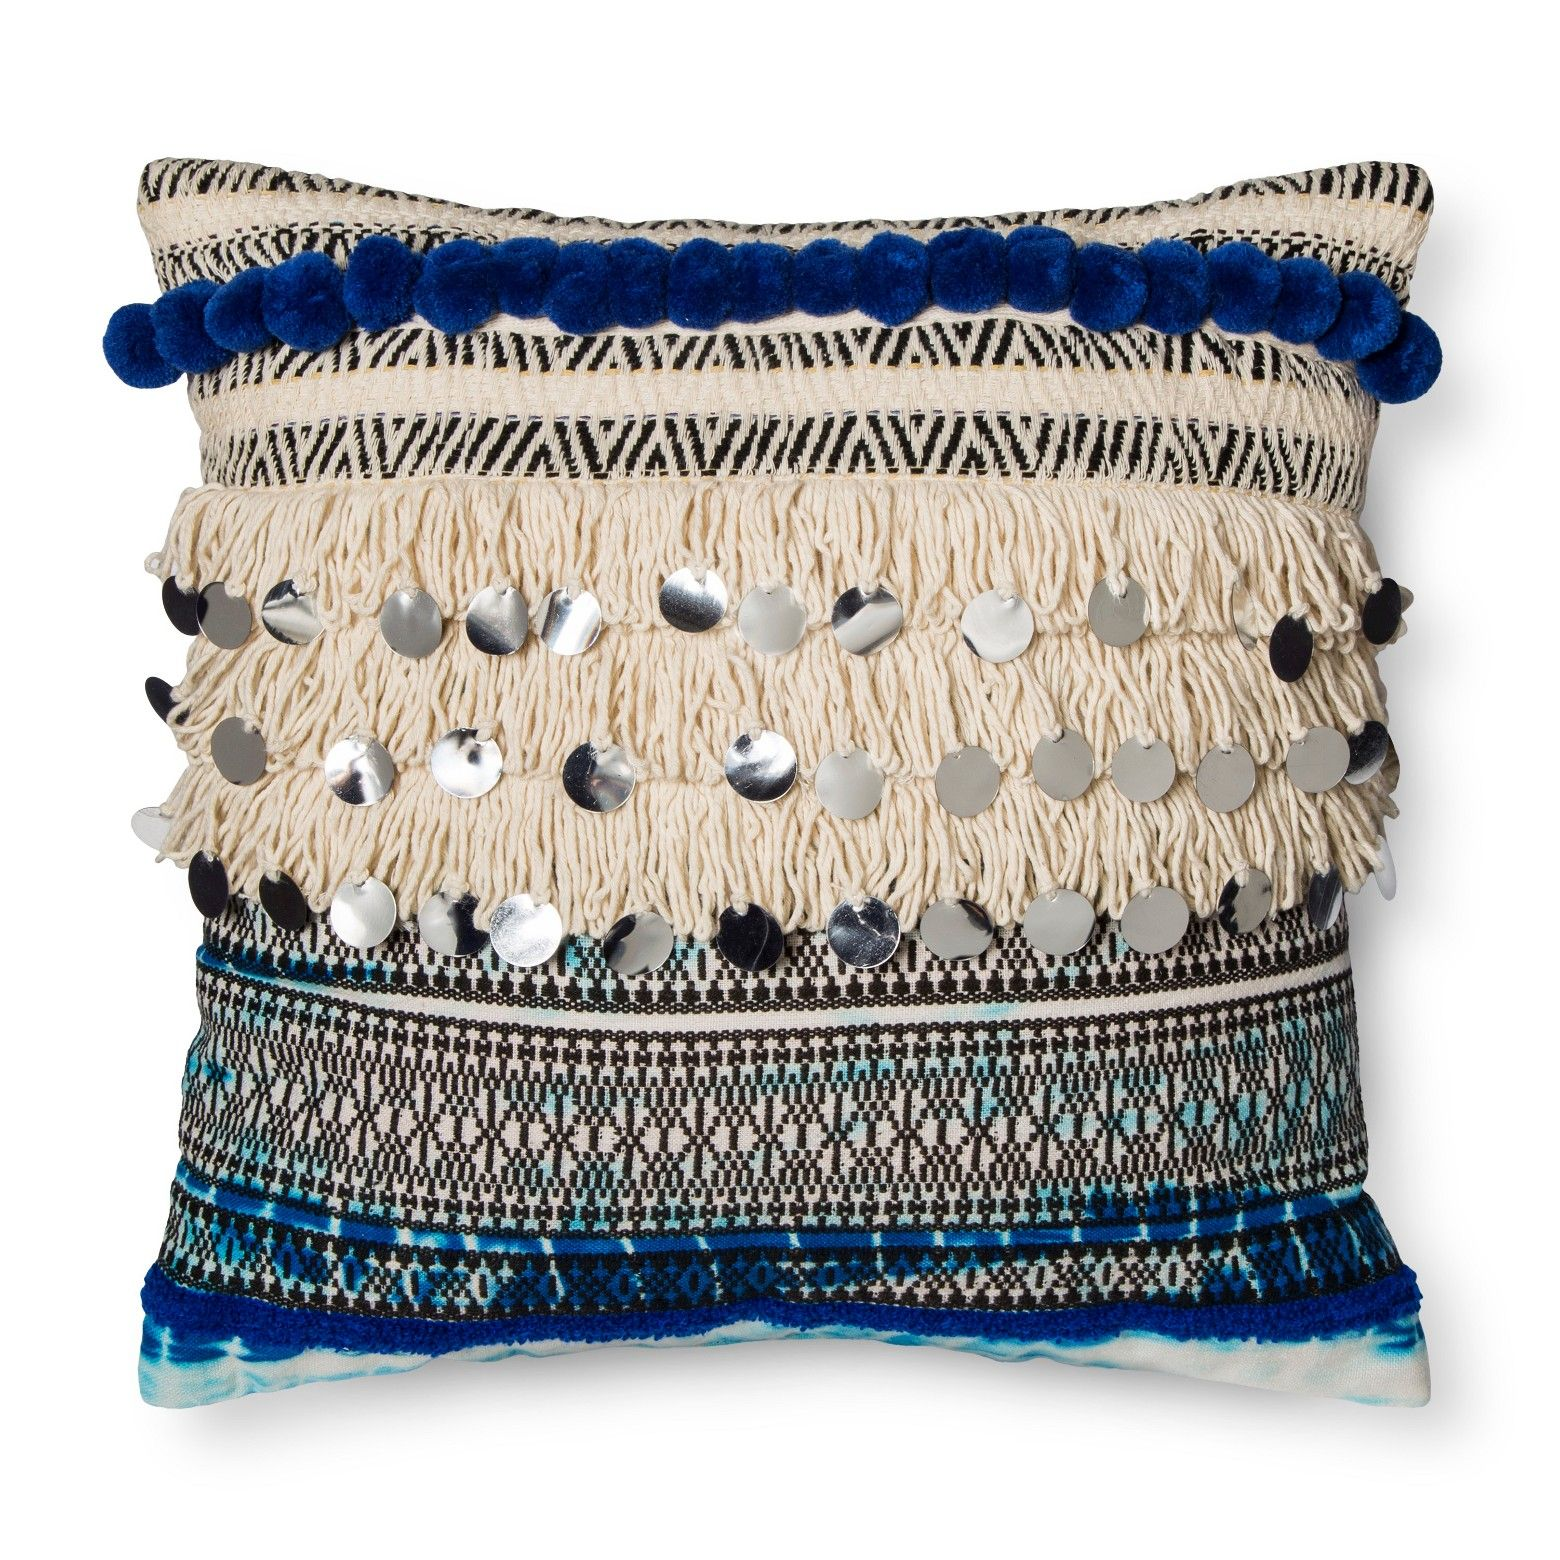 Blue Fringe and Sequins Throw Pillow - Xhilaration | Spot cleaner ...